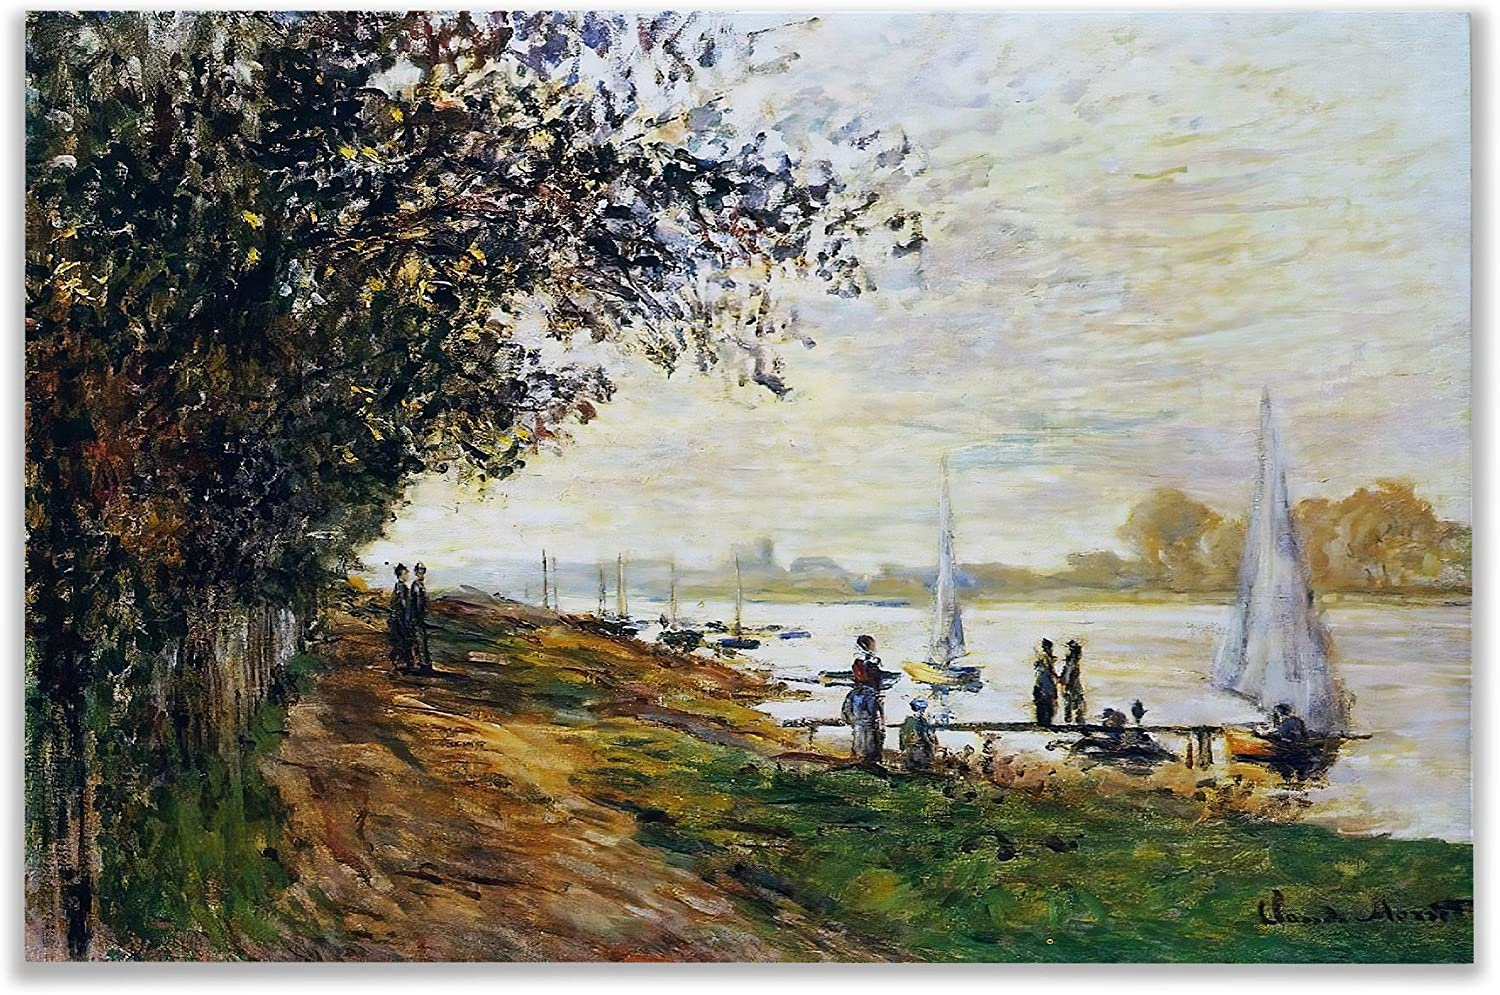 Monet Wall Art Collection The The Riverbank at Le Petit-Gennevilliers, Sunset, 1875 Canvas Prints Wrapped Gallery Wall Art   Stretched and Framed Ready to Hang 36X48,